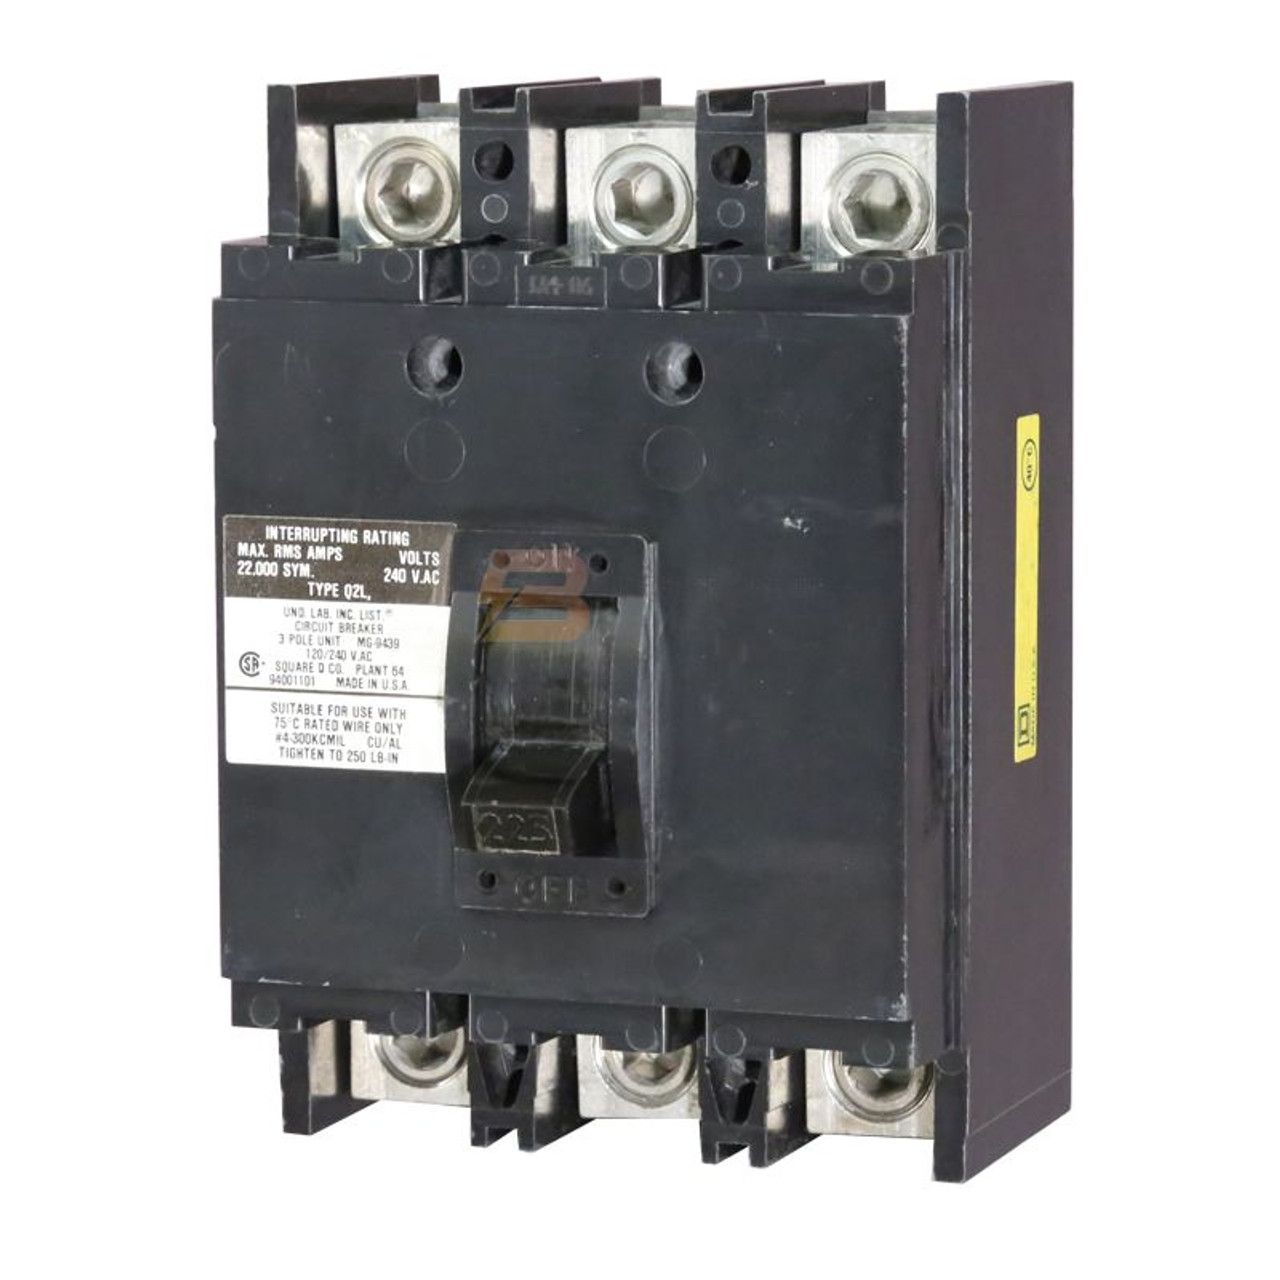 Q2L3125H (Pic is example for all Amps)